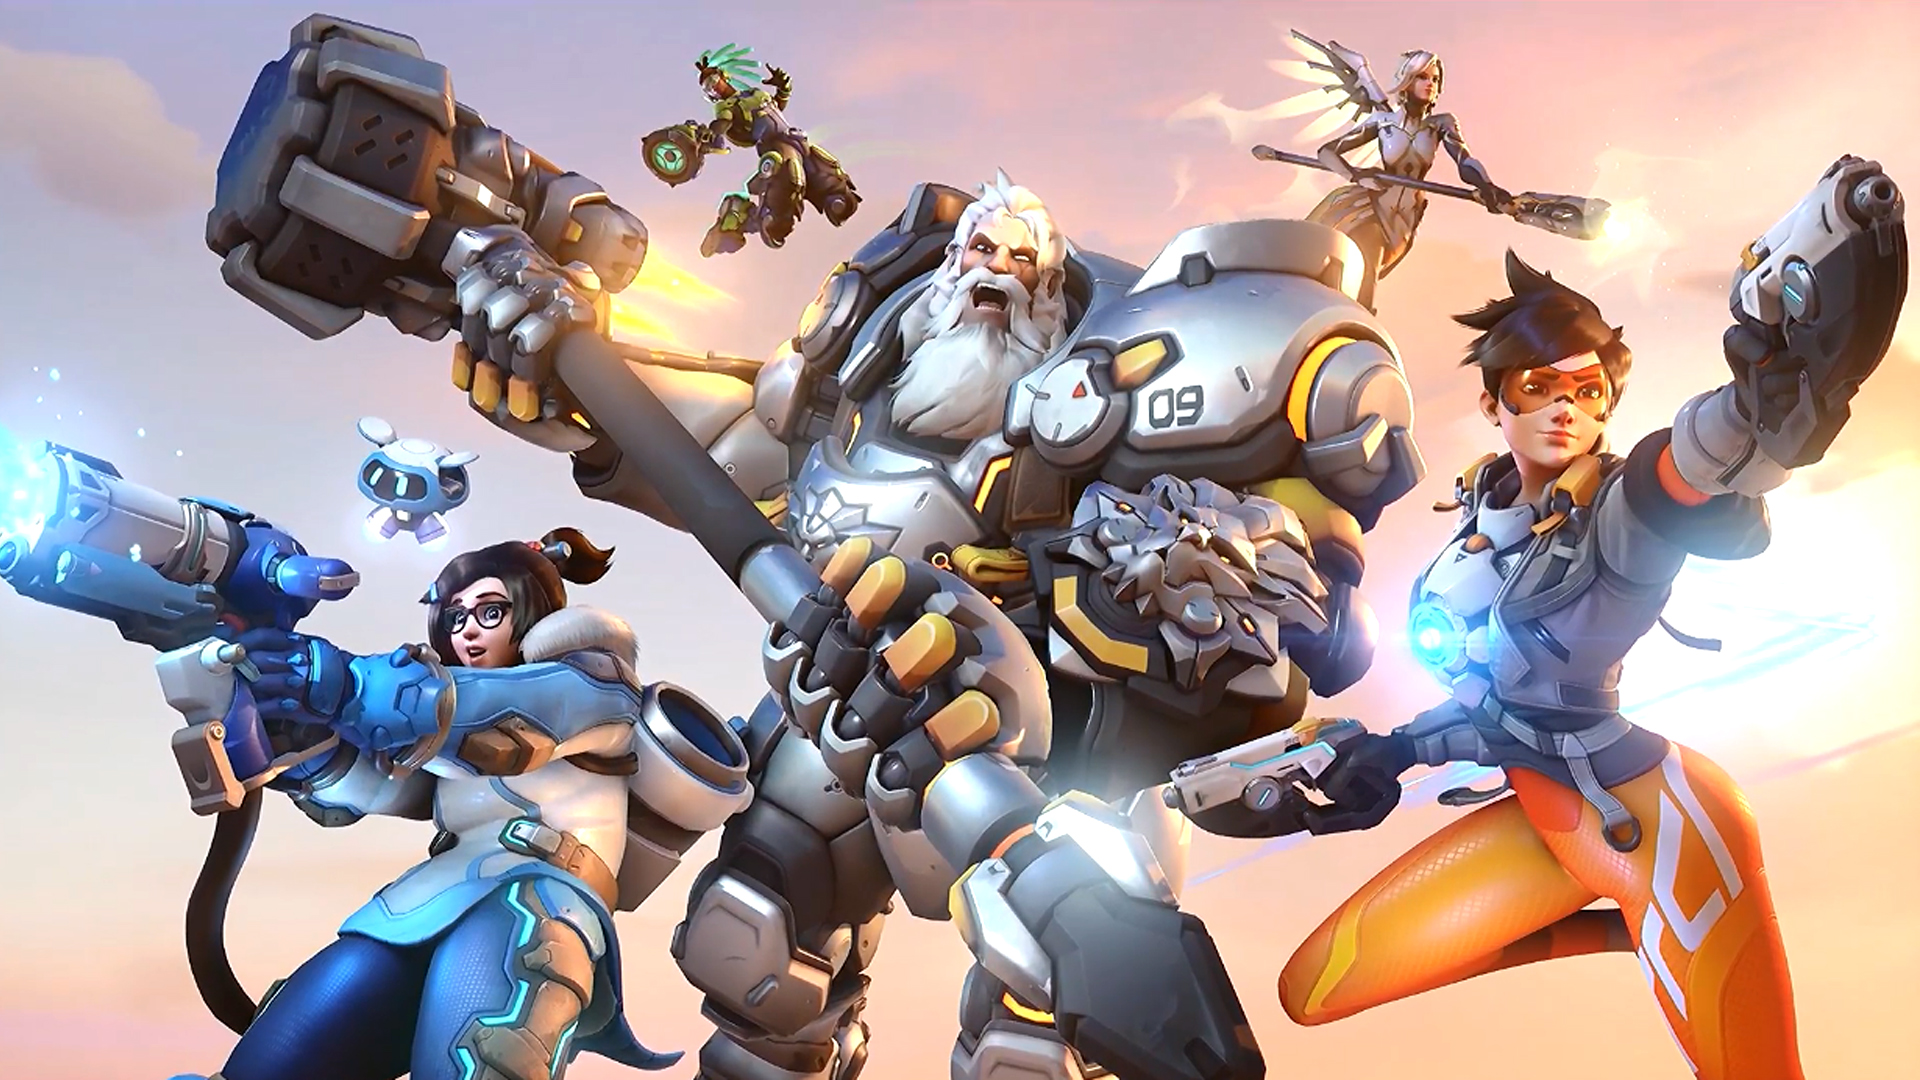 """Overwatch 2 will include """"deeply replayable"""" PvE hero missions 